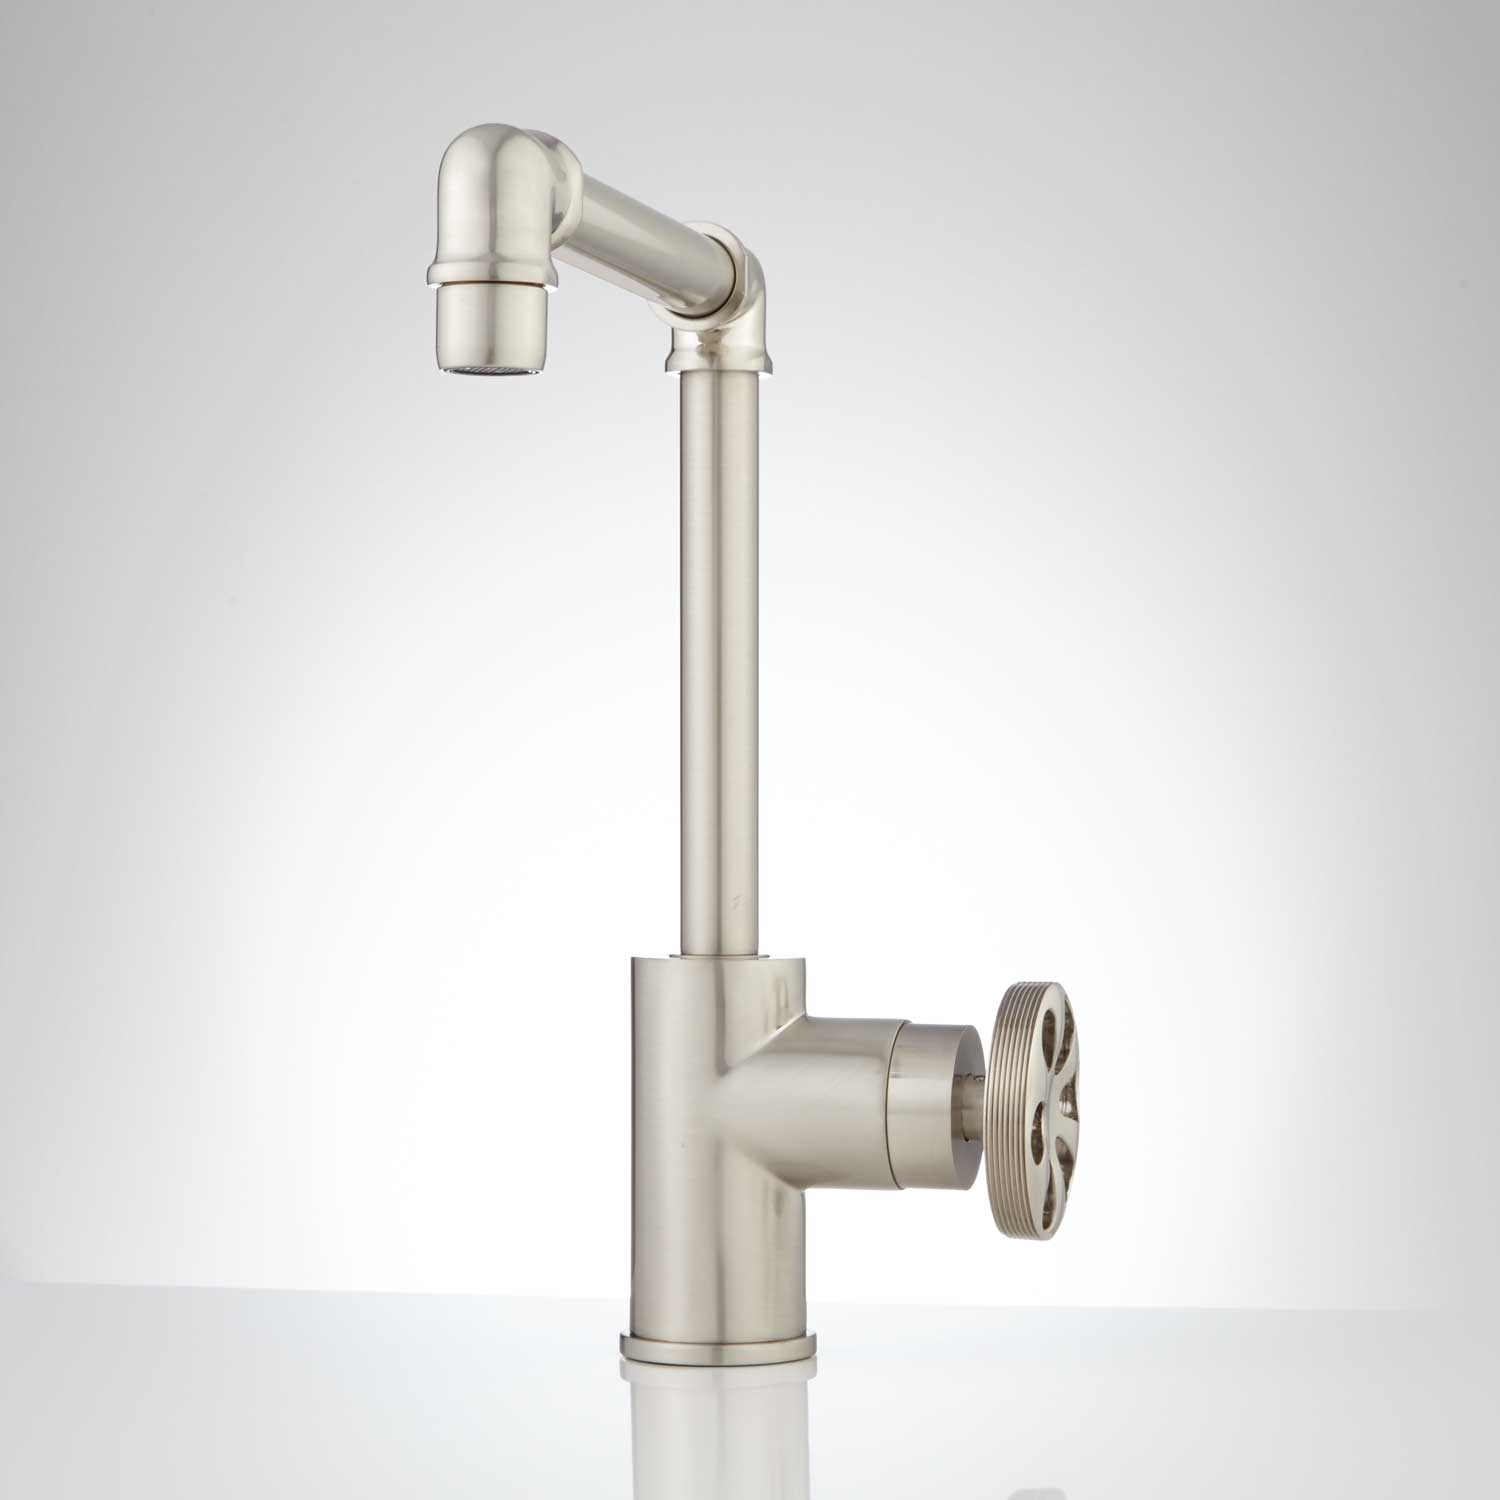 Ideas, solid brass bath faucets solid brass bath faucets bathroom solid brass faucet signature hardware 1500 x 1500 1  .